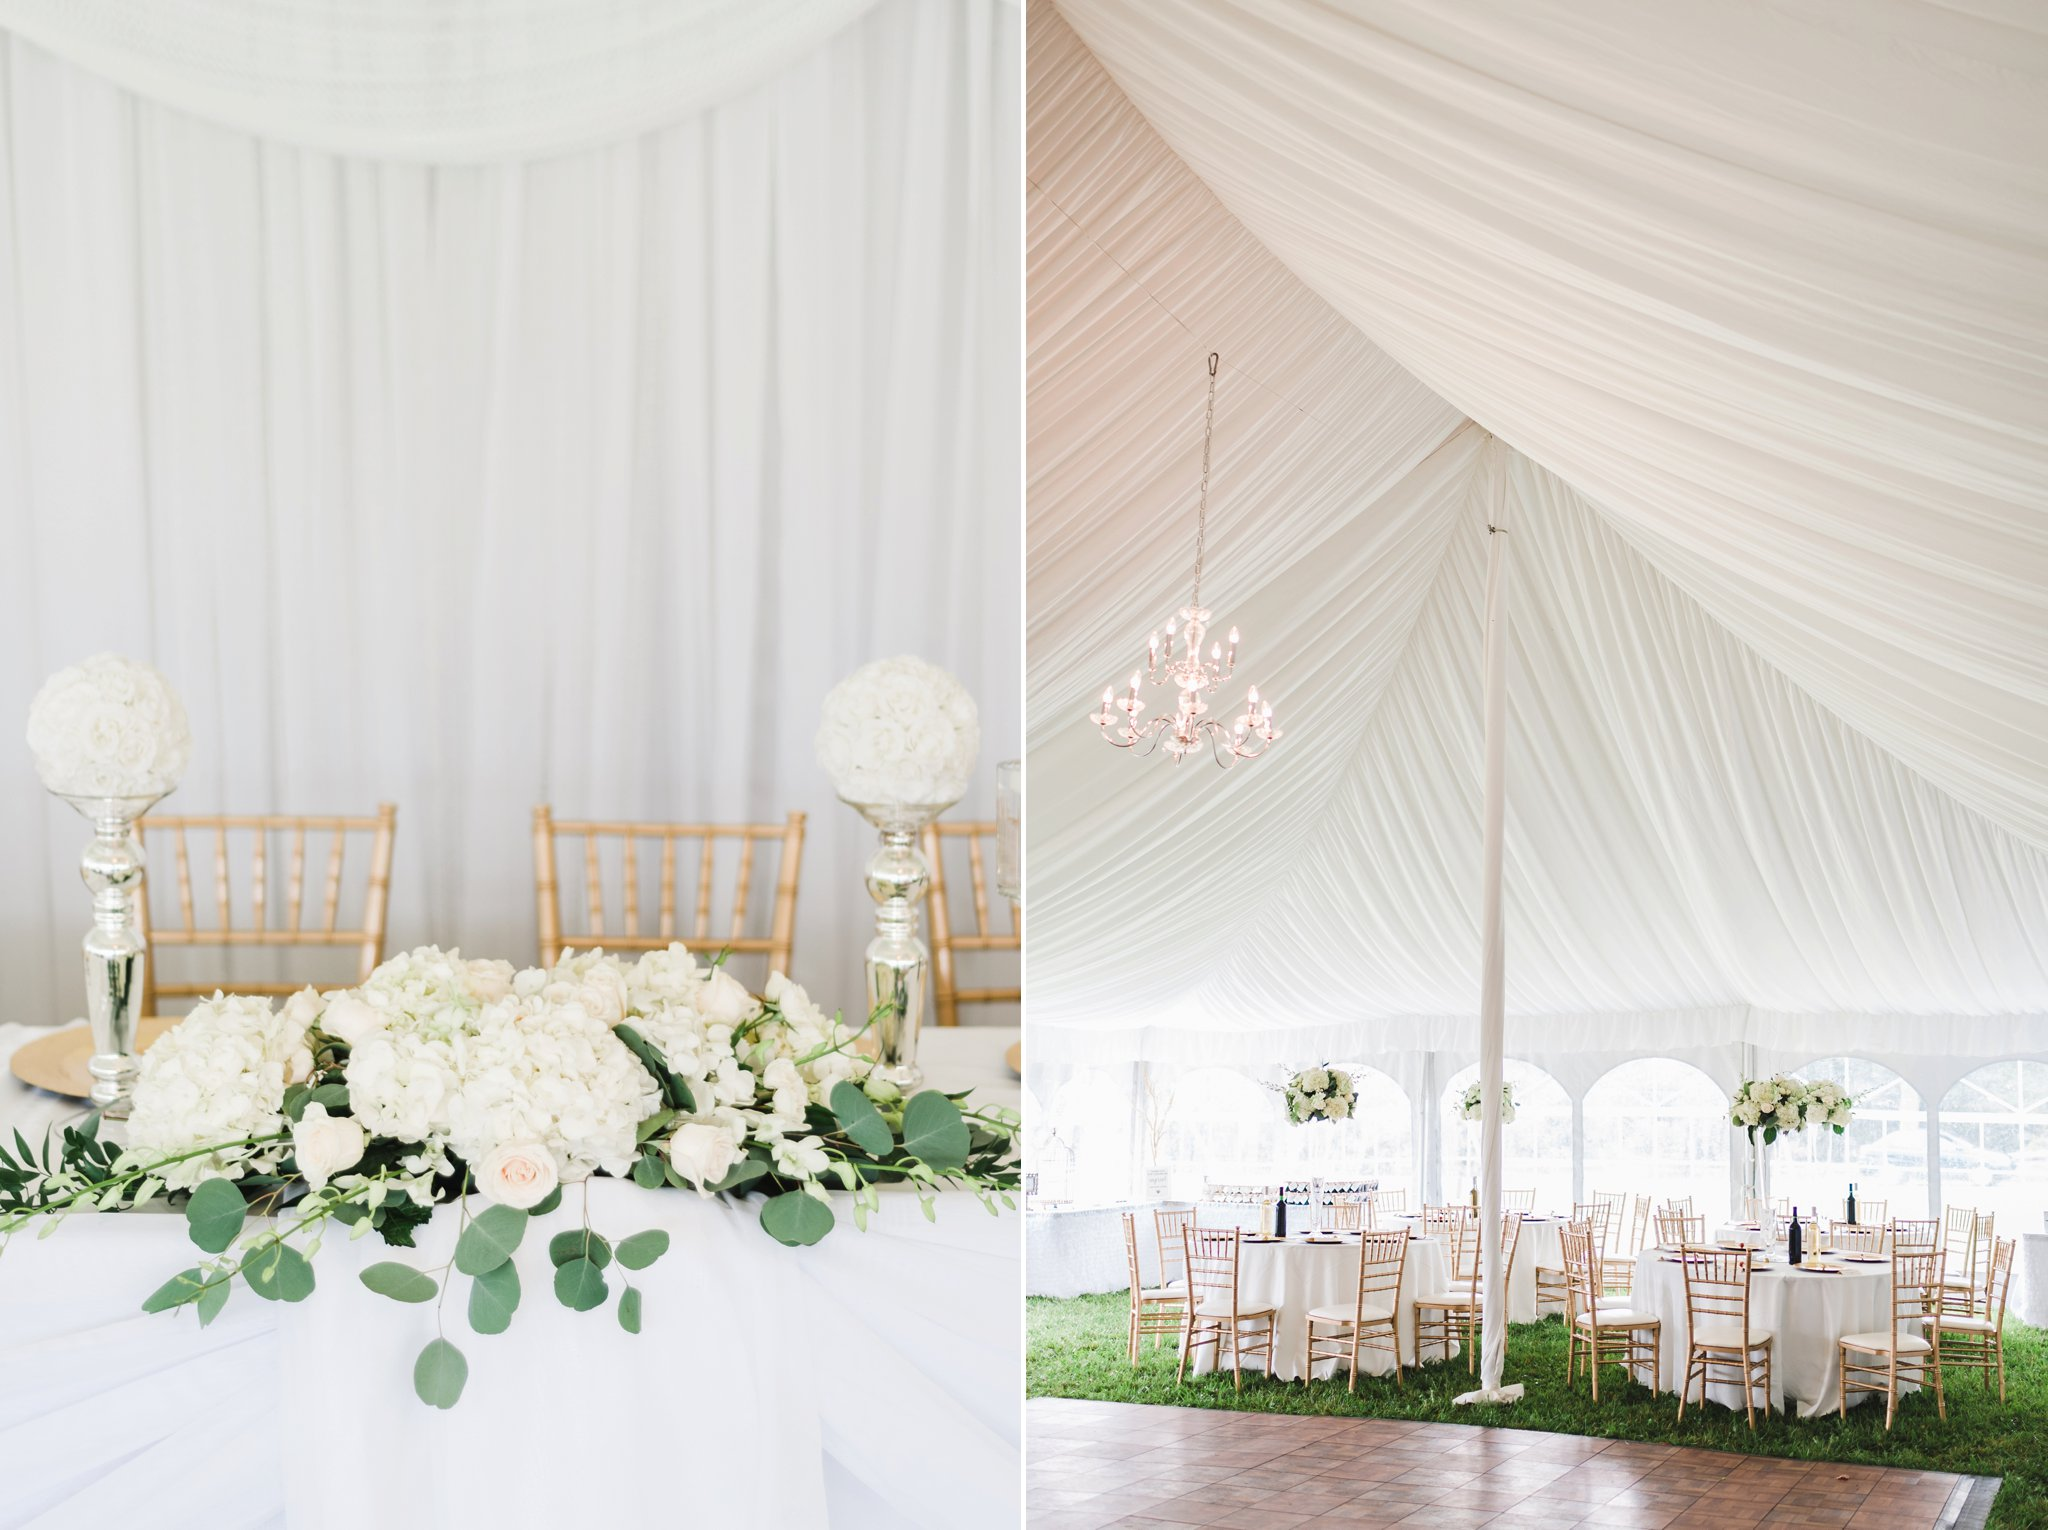 A tent with white ceiling draping at the alpaca farm wedding